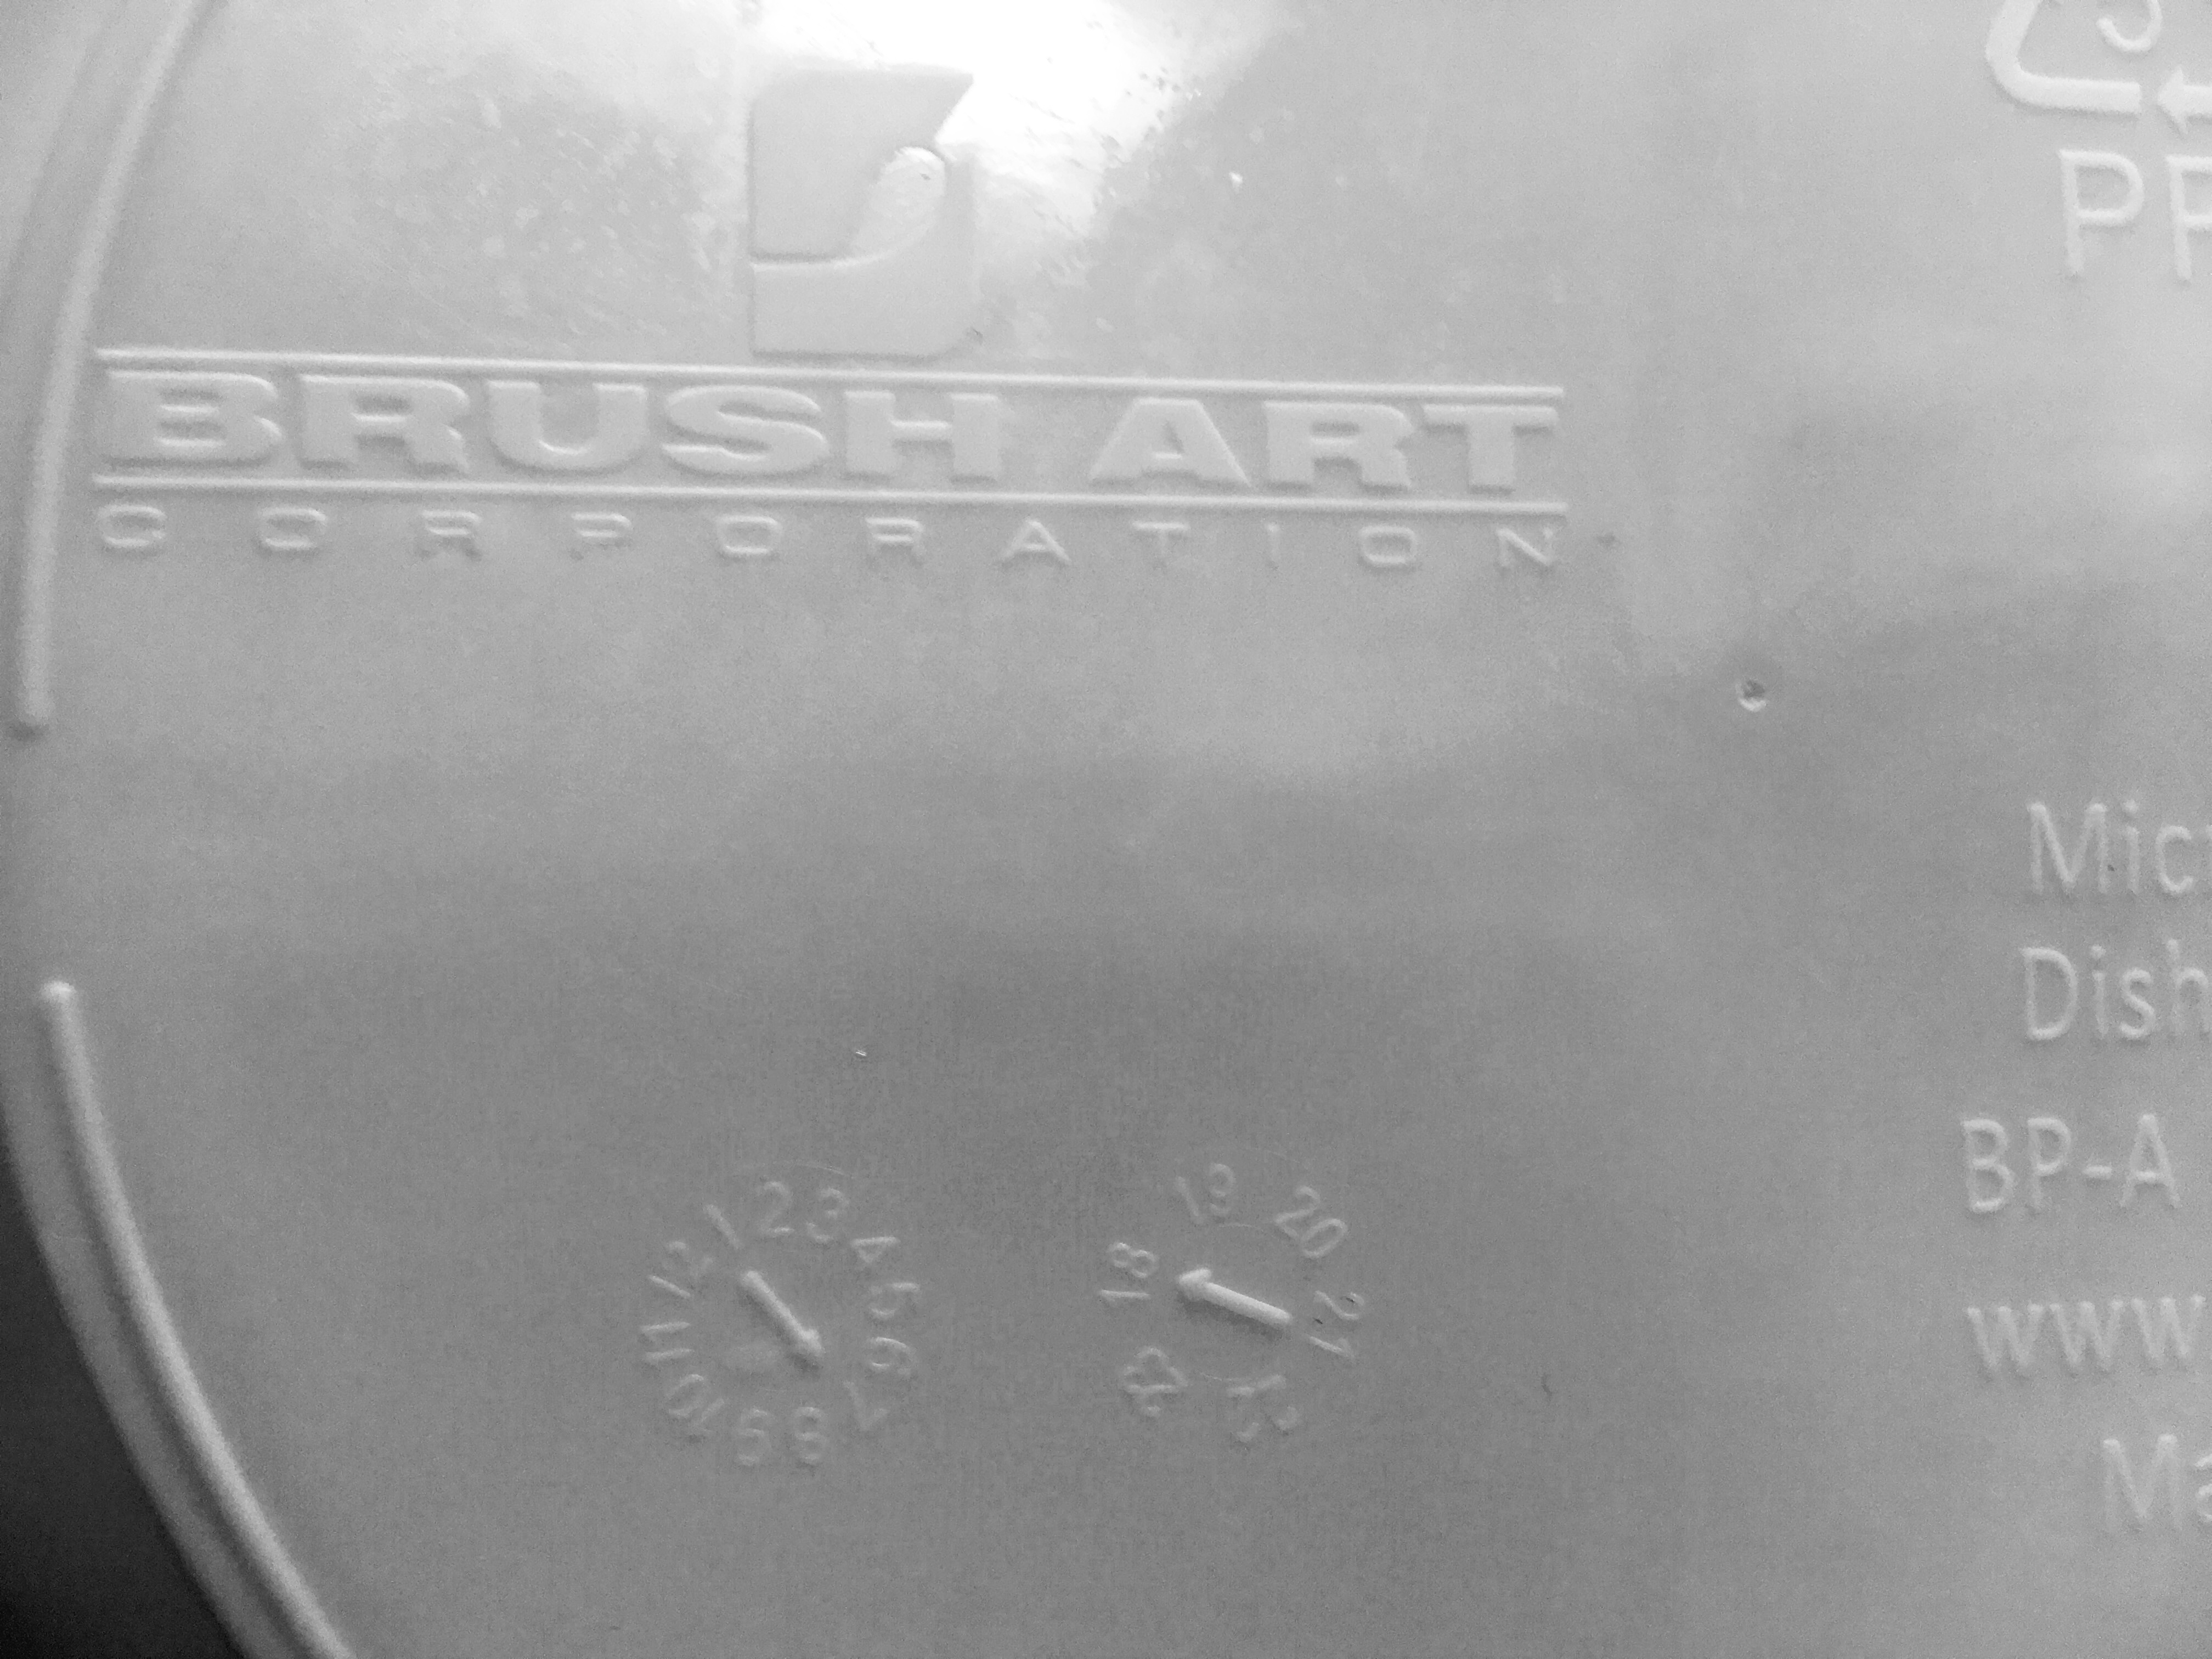 Back of WIC Nutrition Plate – Brush Art logo and date code